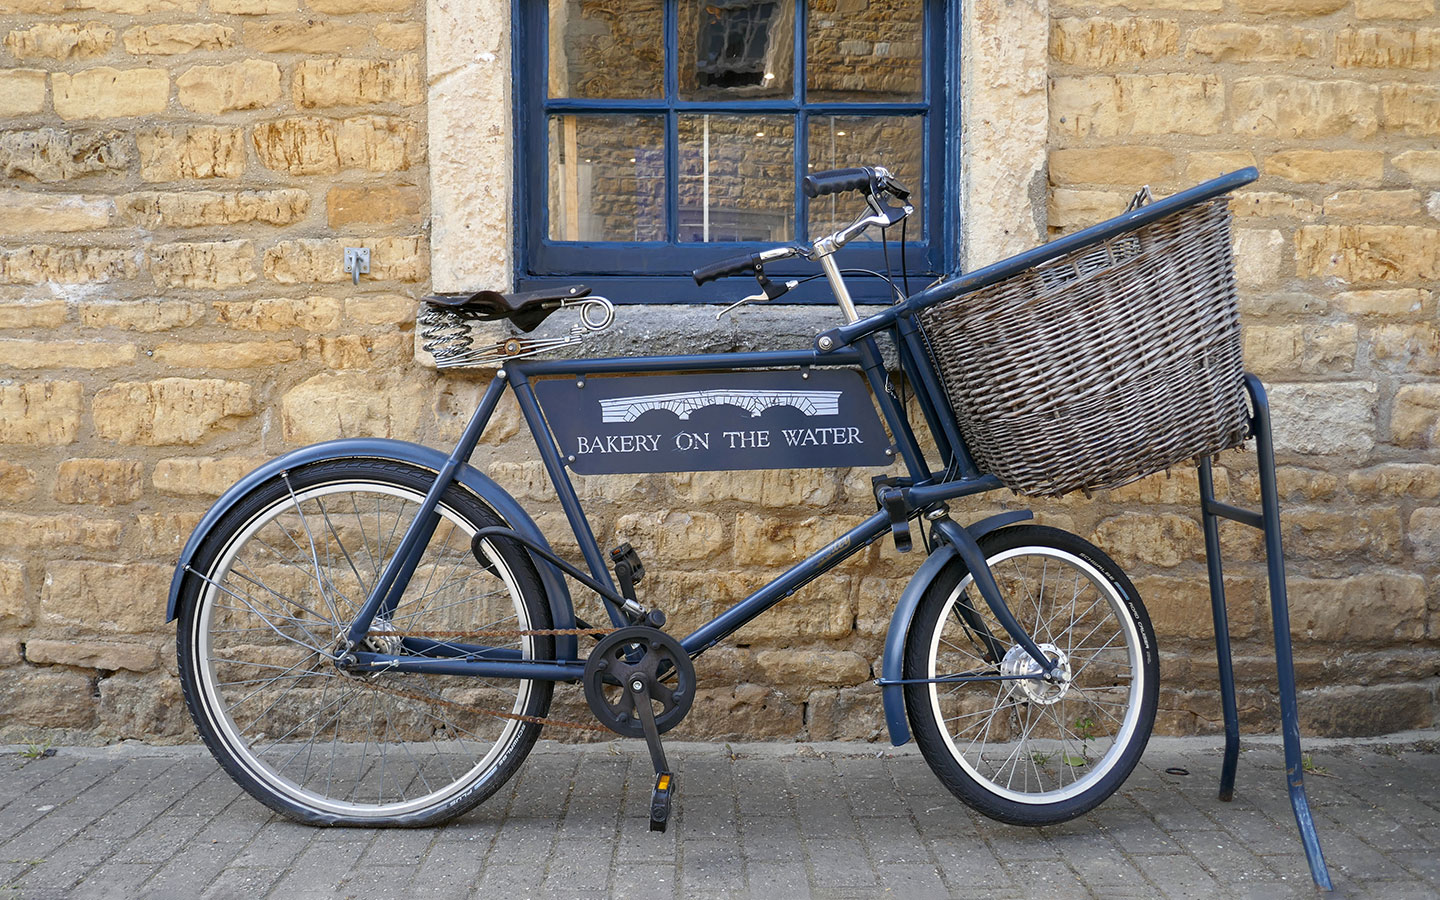 Vintage bike outside the Bakery on the Water